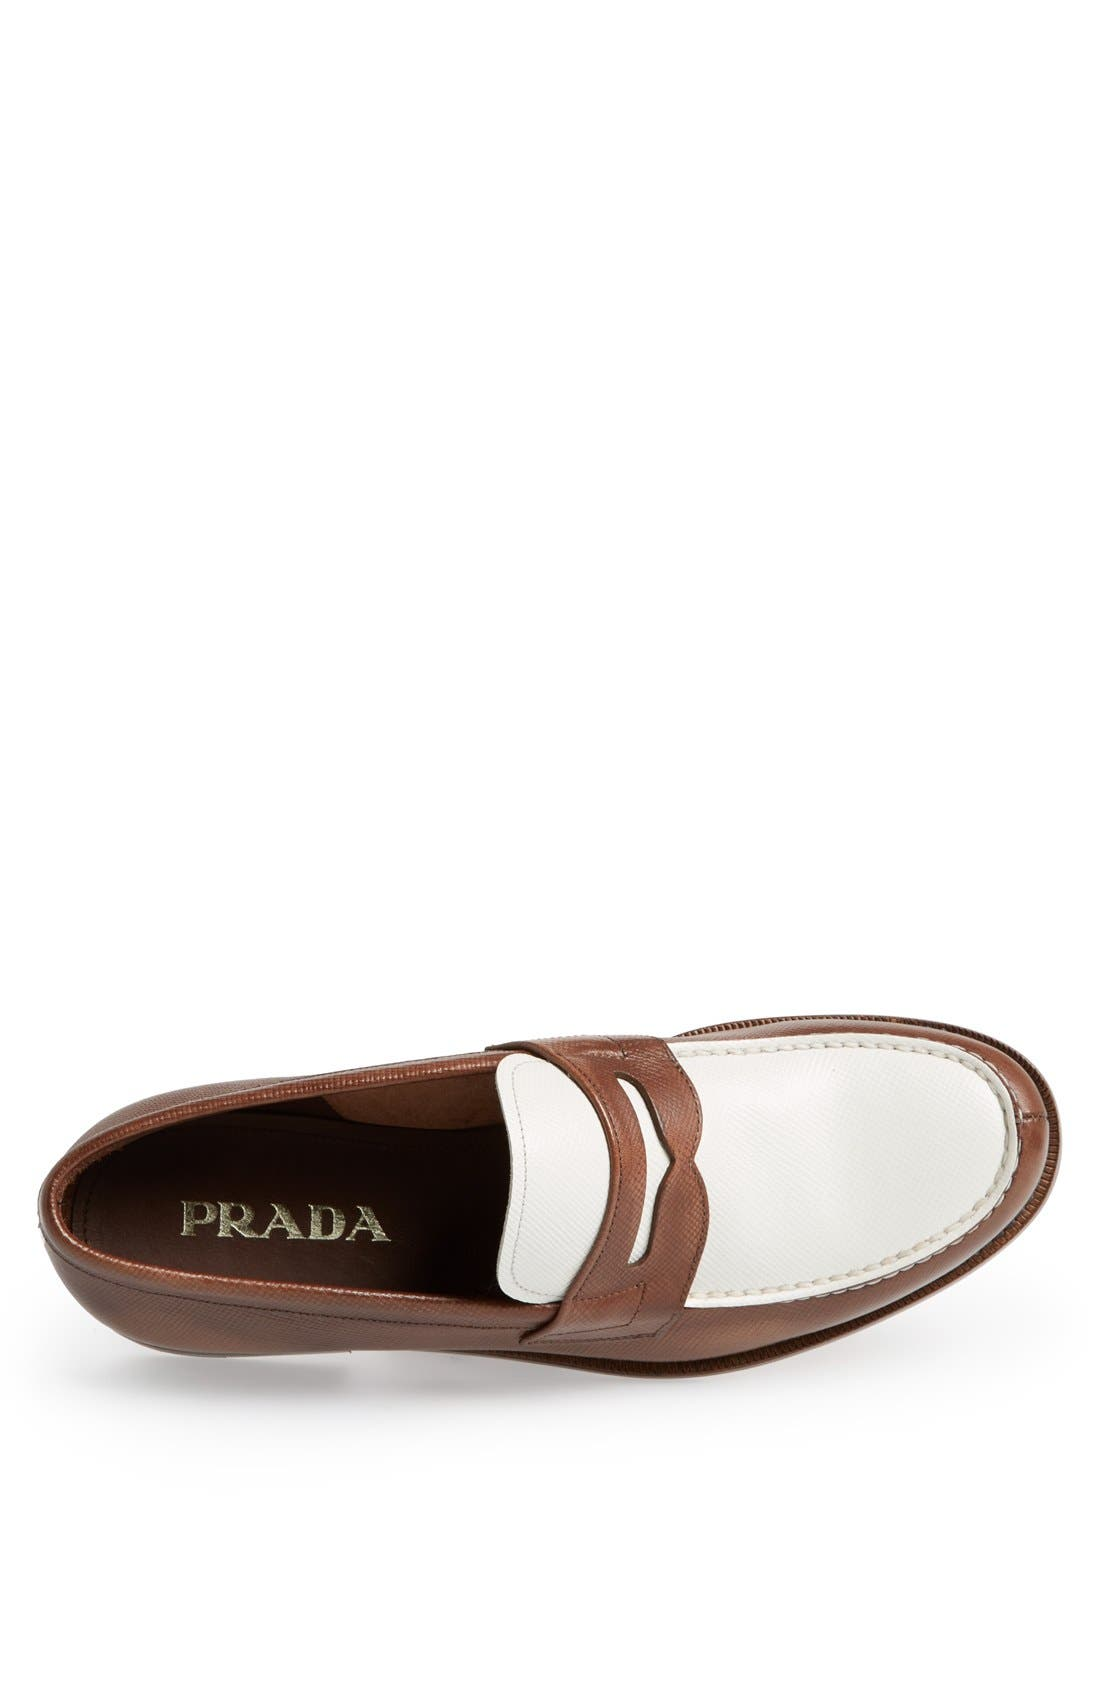 Alternate Image 3  - Prada Saffiano Penny Loafer